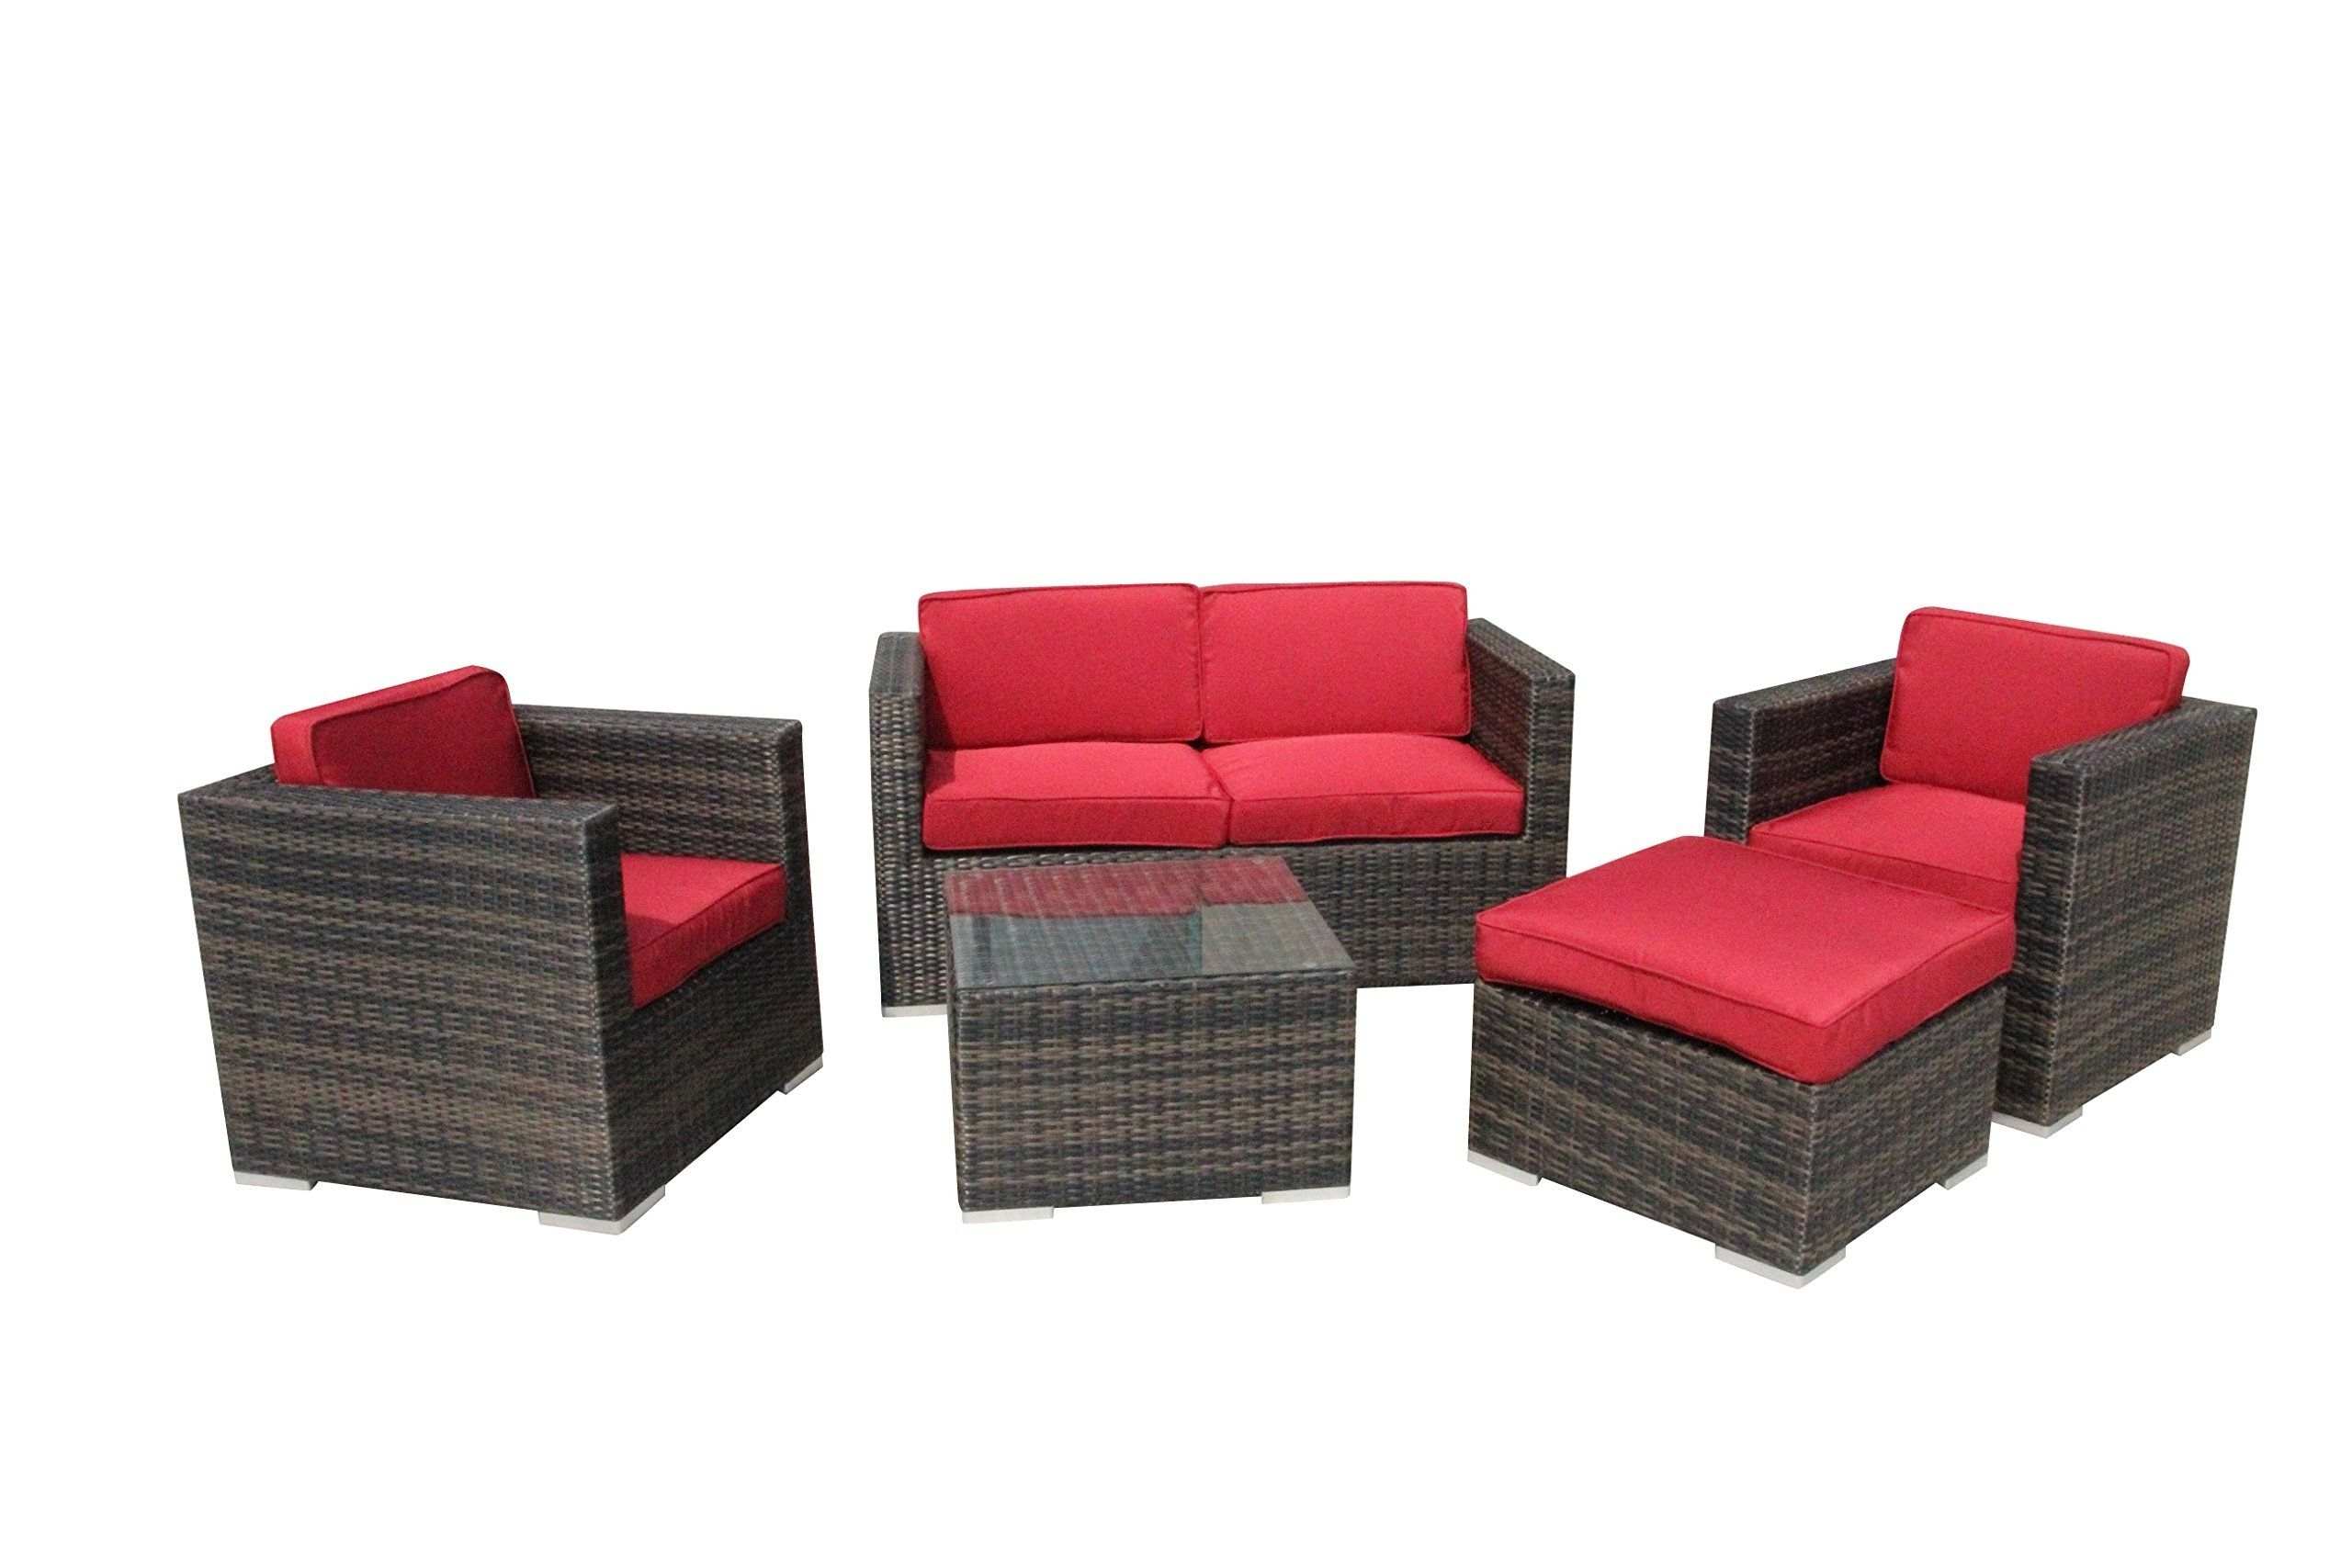 5 Piece Conversation Set Patio Sofa Set Red — Read More At The Regarding Newest Nfm Patio Conversation Sets (Gallery 13 of 15)